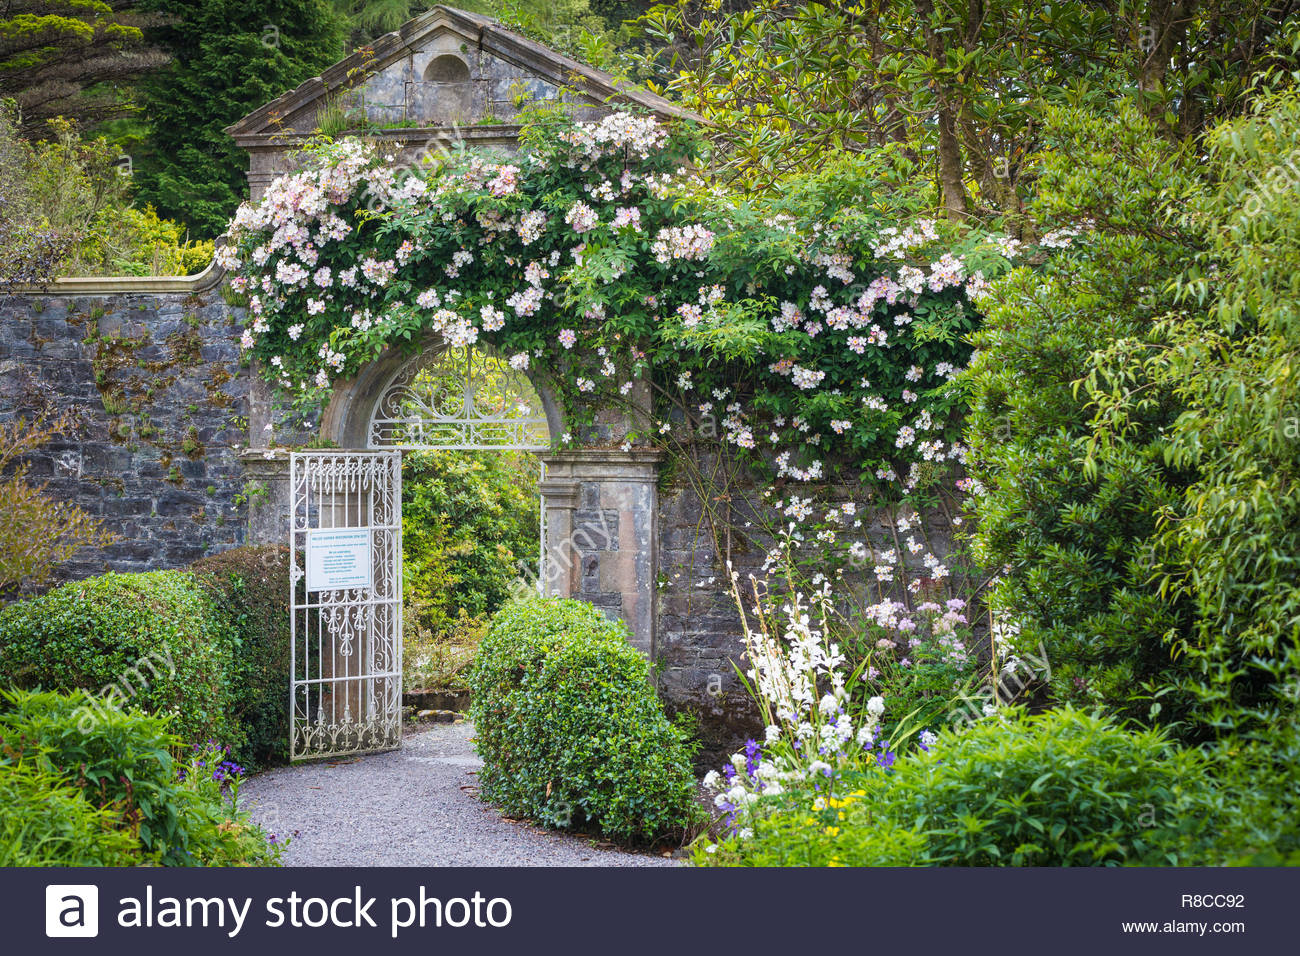 wonderful-garden-on-garnish-island-near-glengarriff-co-cork-ireland-R8CC92.jpg